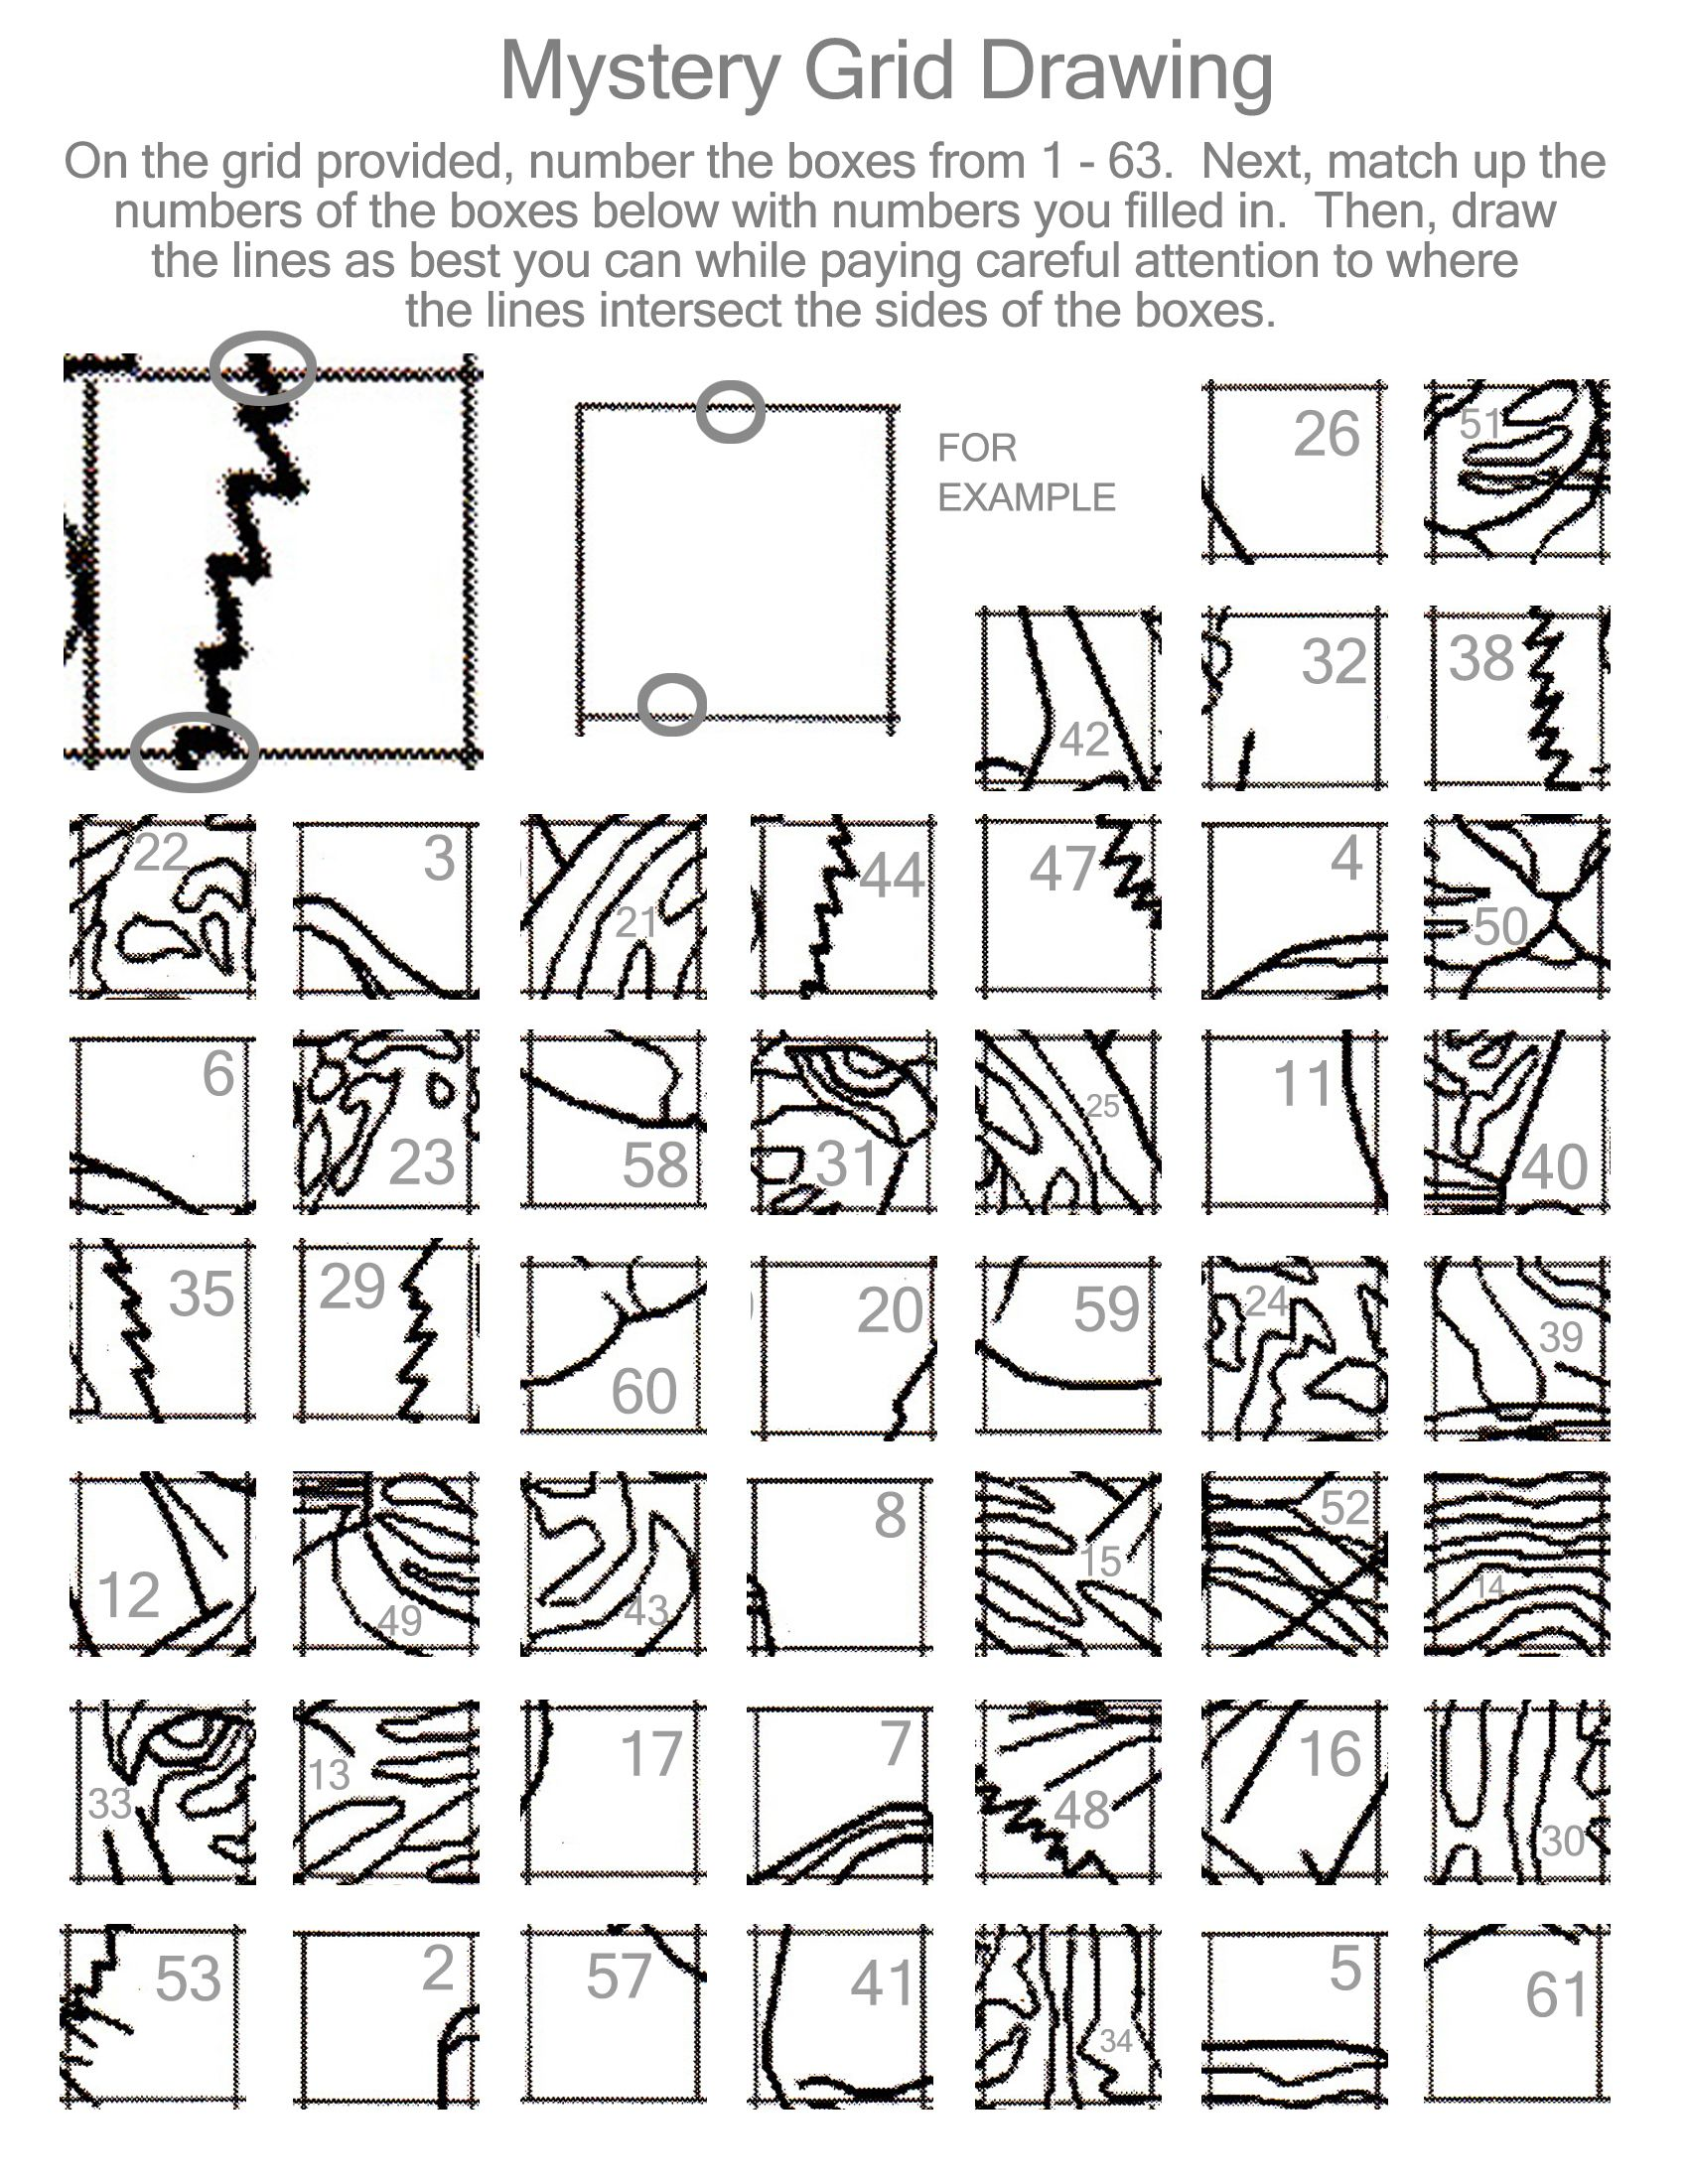 Worksheets Grid Art Worksheets drawing activity to teach the grid method requires a 9x7 1 inch grid